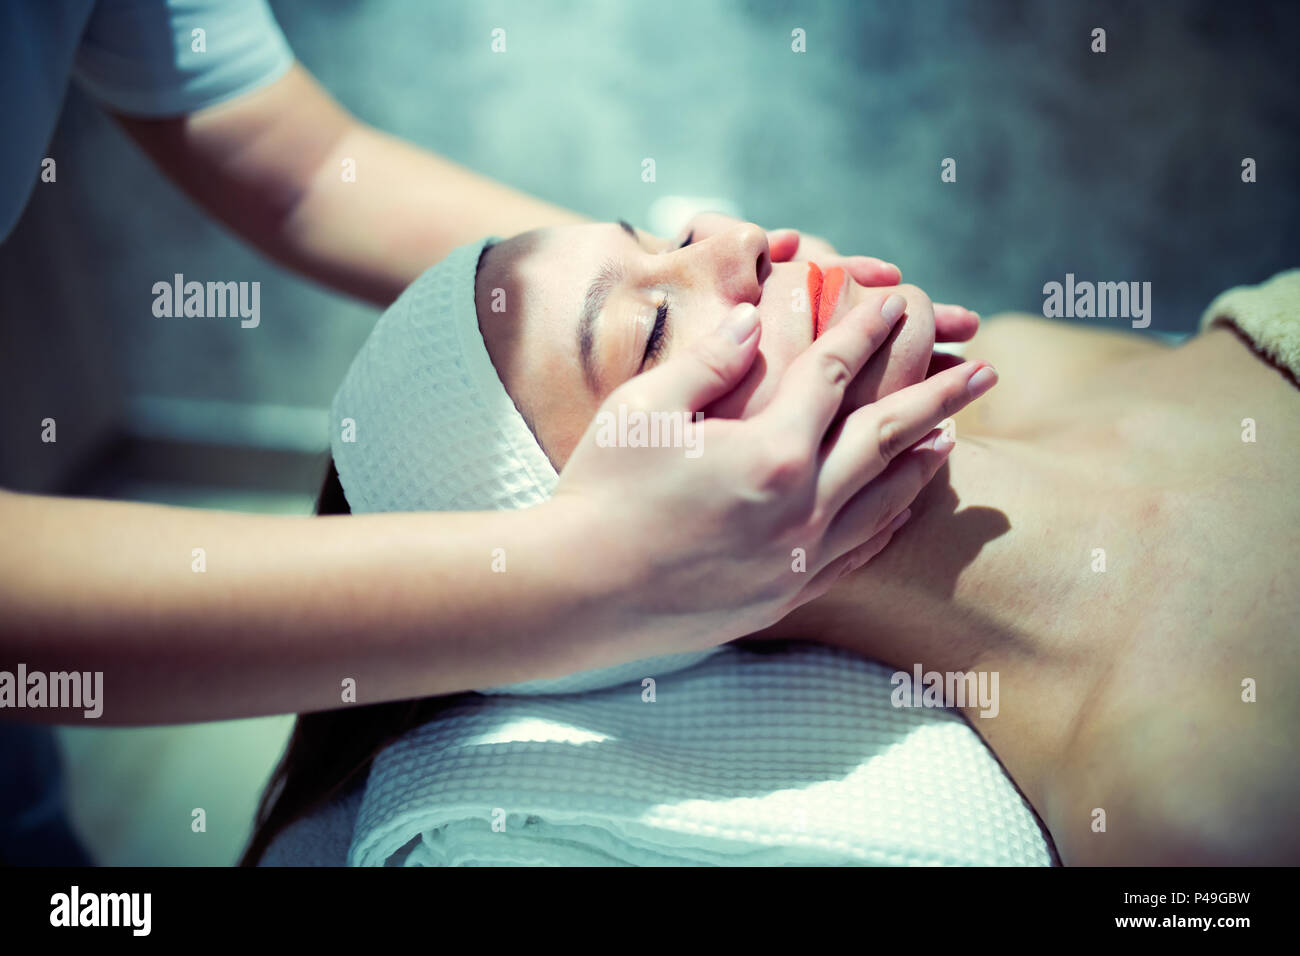 Facial massage treatment by professional at cosmetics saloon - Stock Image